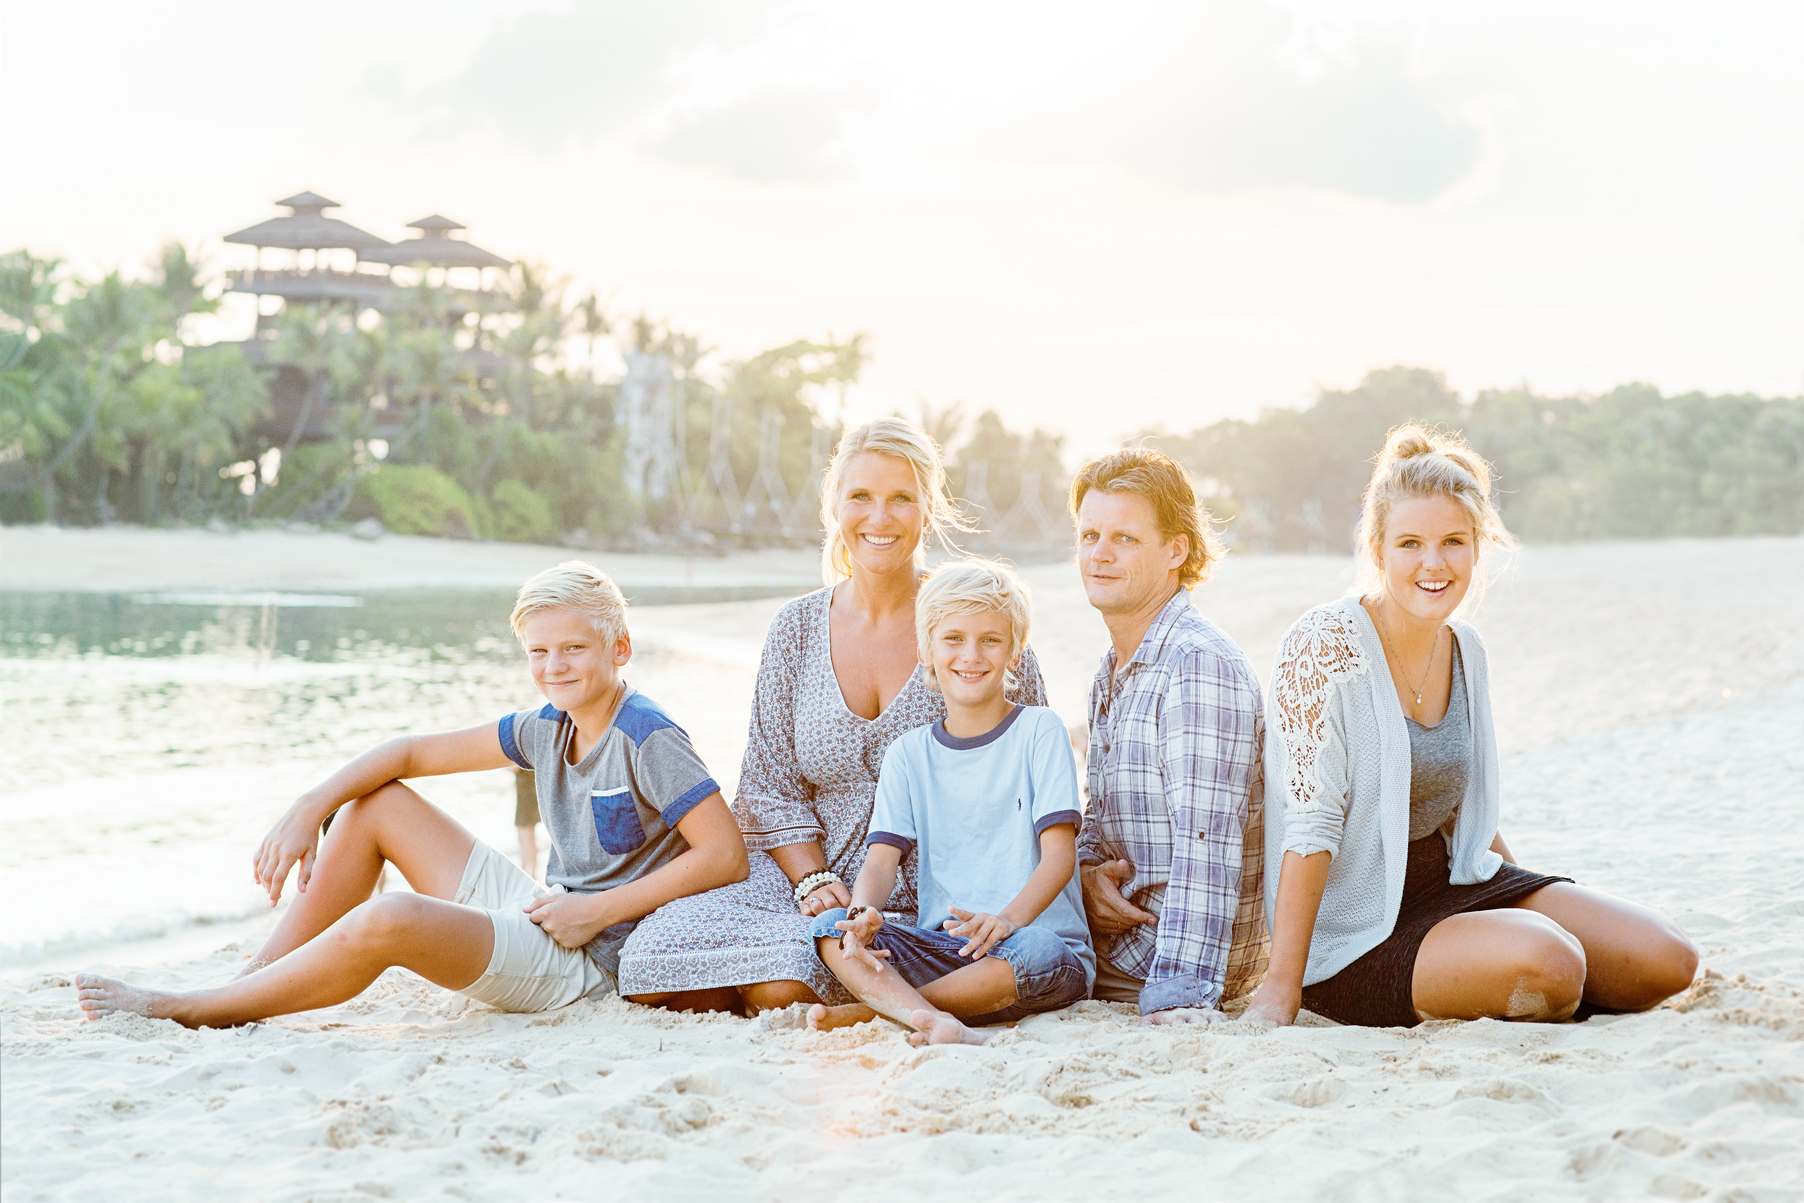 Lifestyle family beach photo